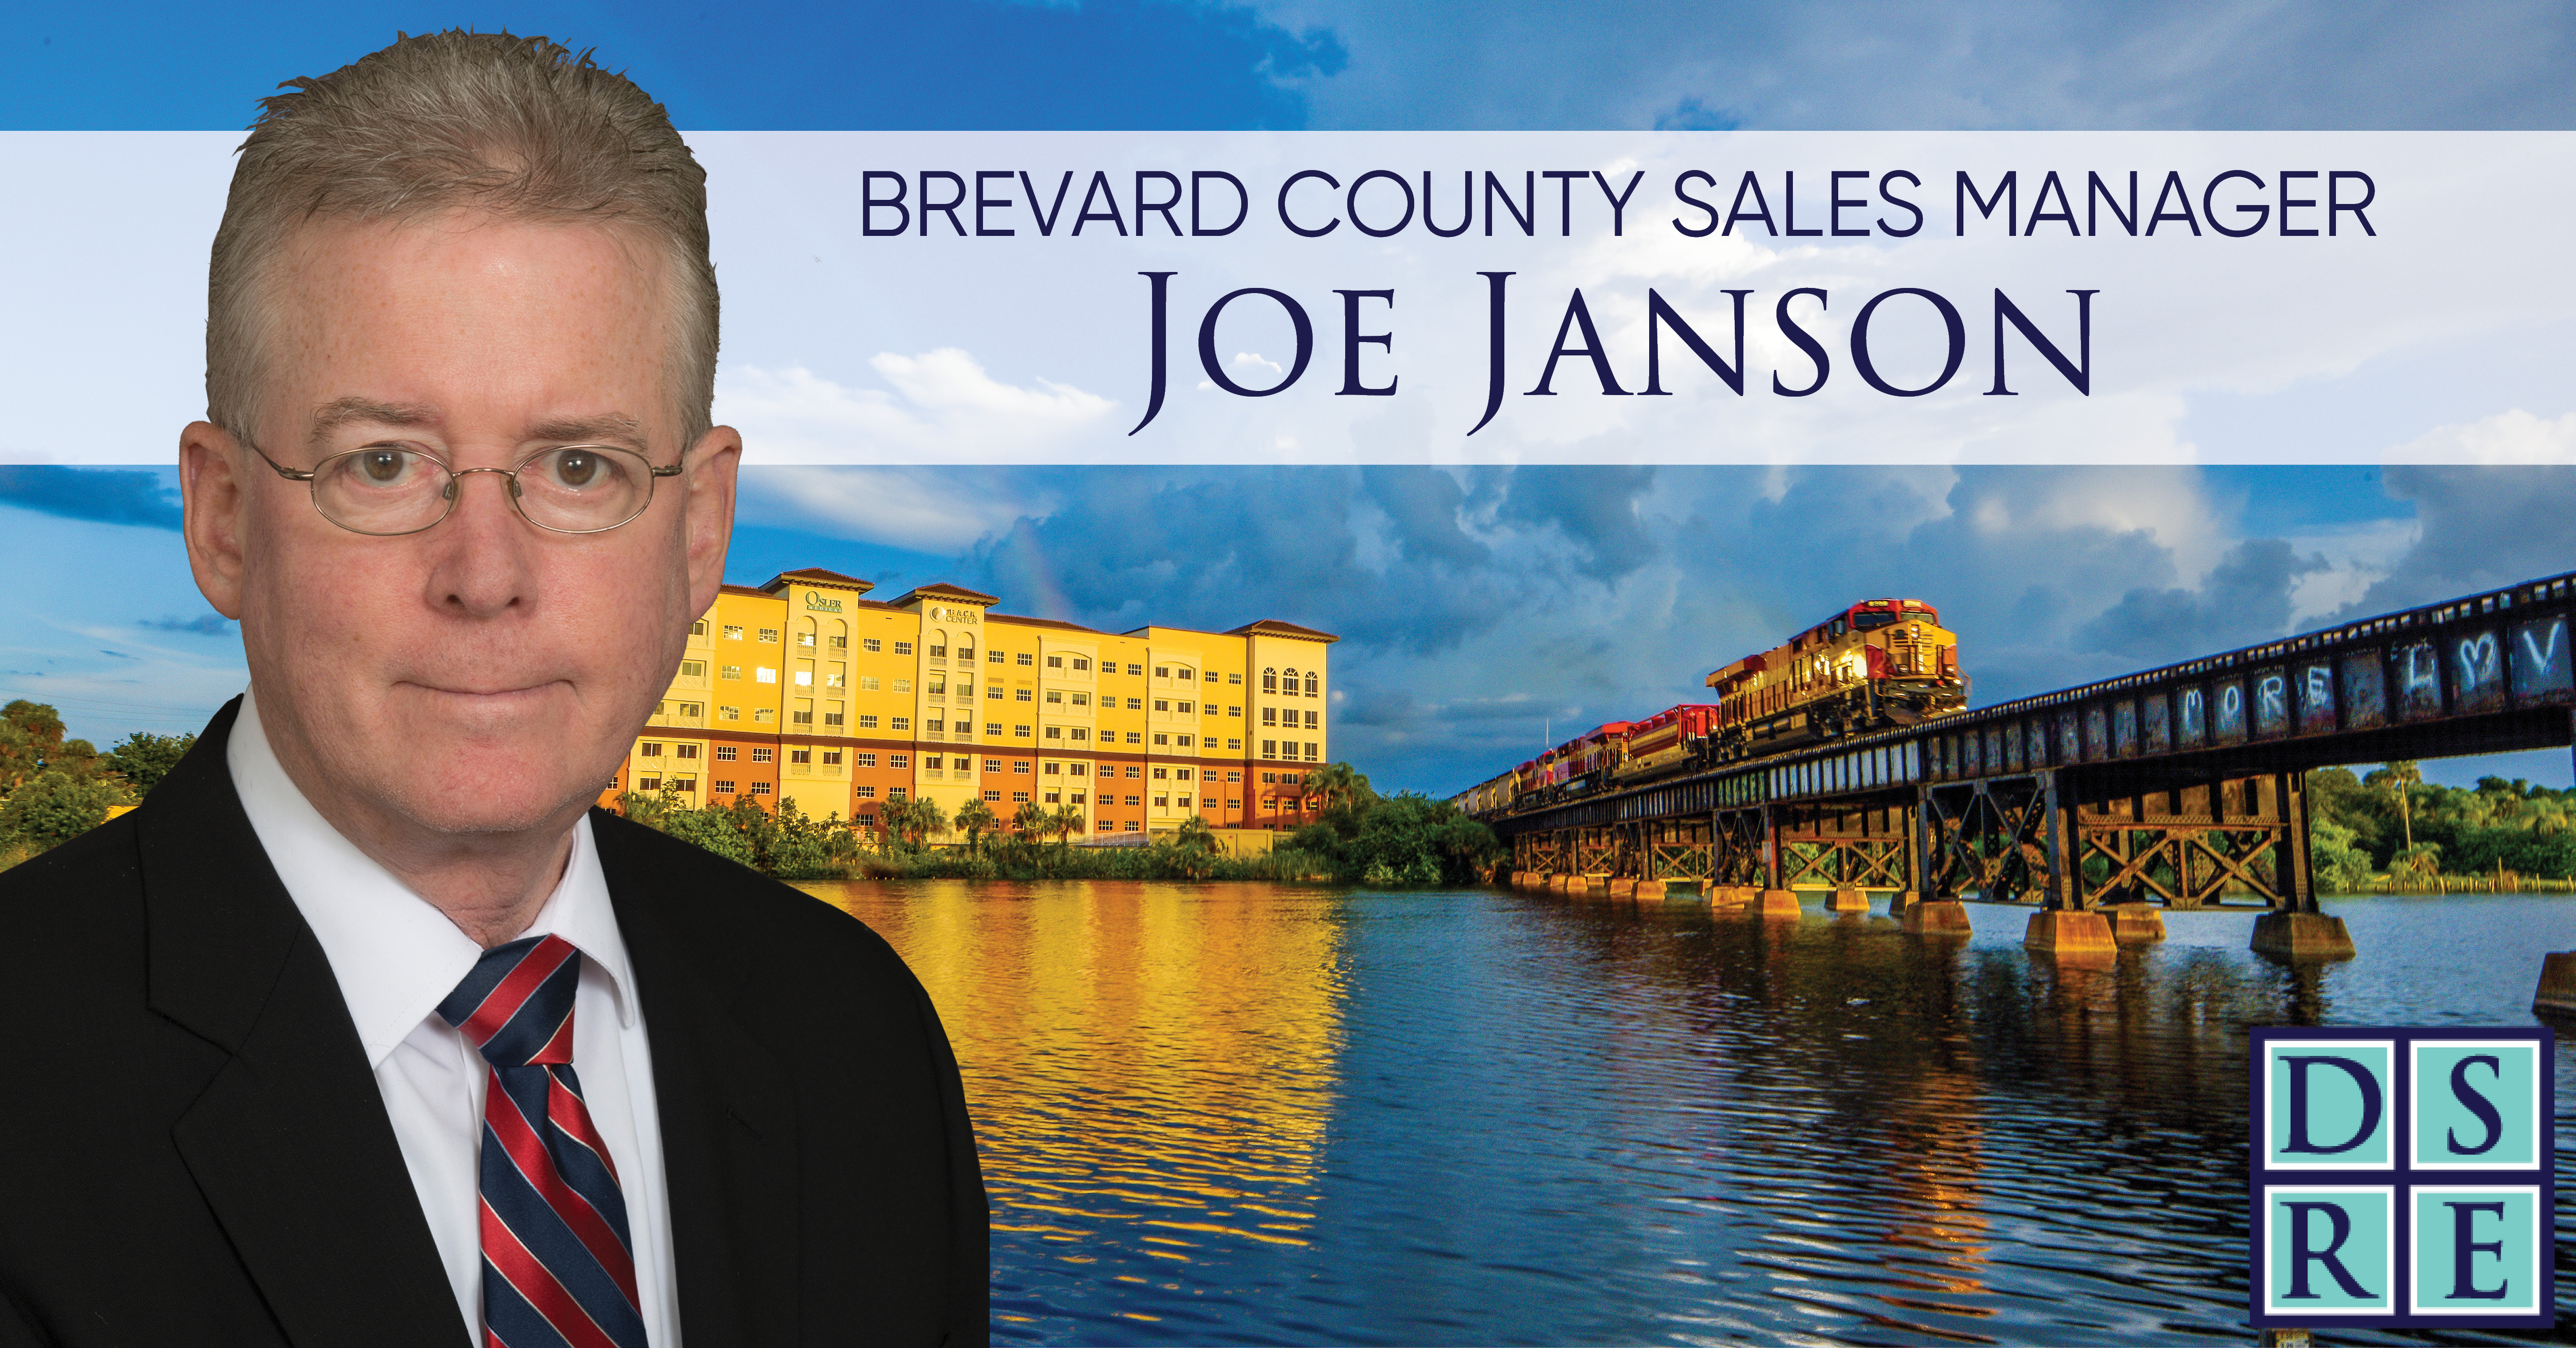 Brevard County Sales Manager Joe Janson DSRE